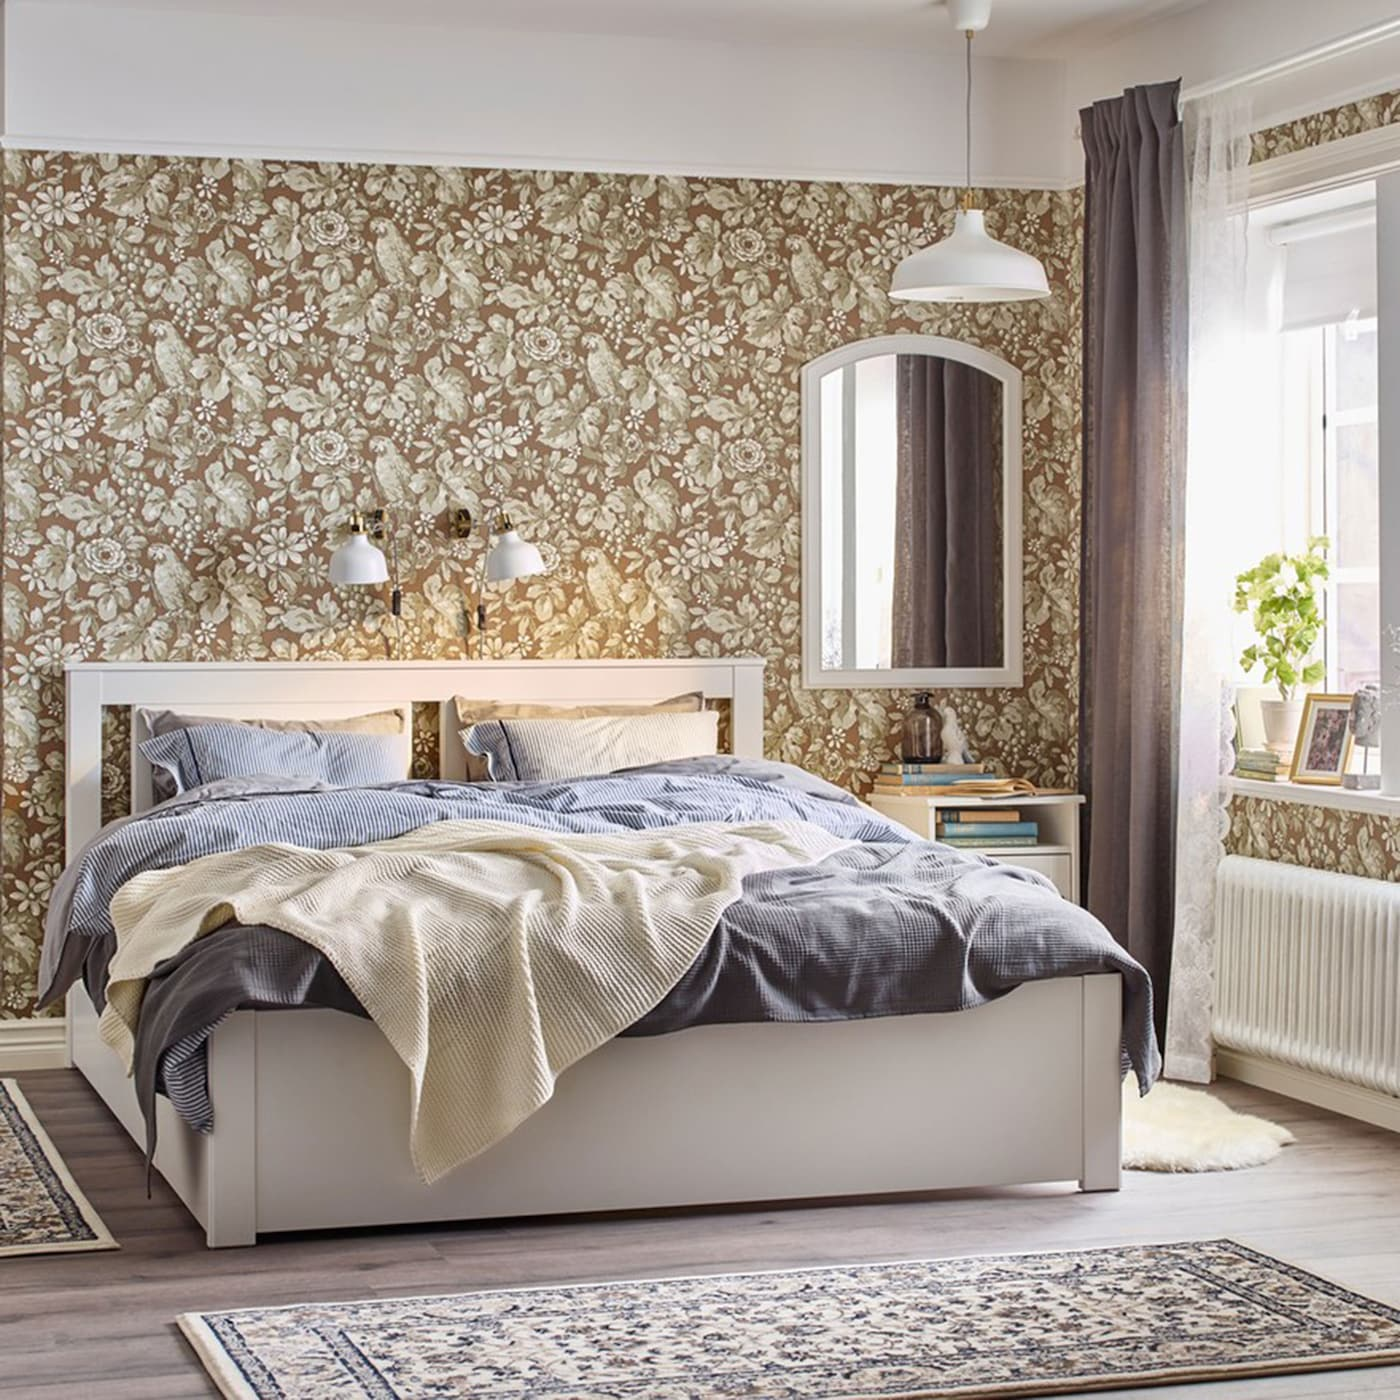 A traditional beige, blue and white bedroom with a white IKEA SONGESAND bed and frame, bedside table and chest-of-drawers.